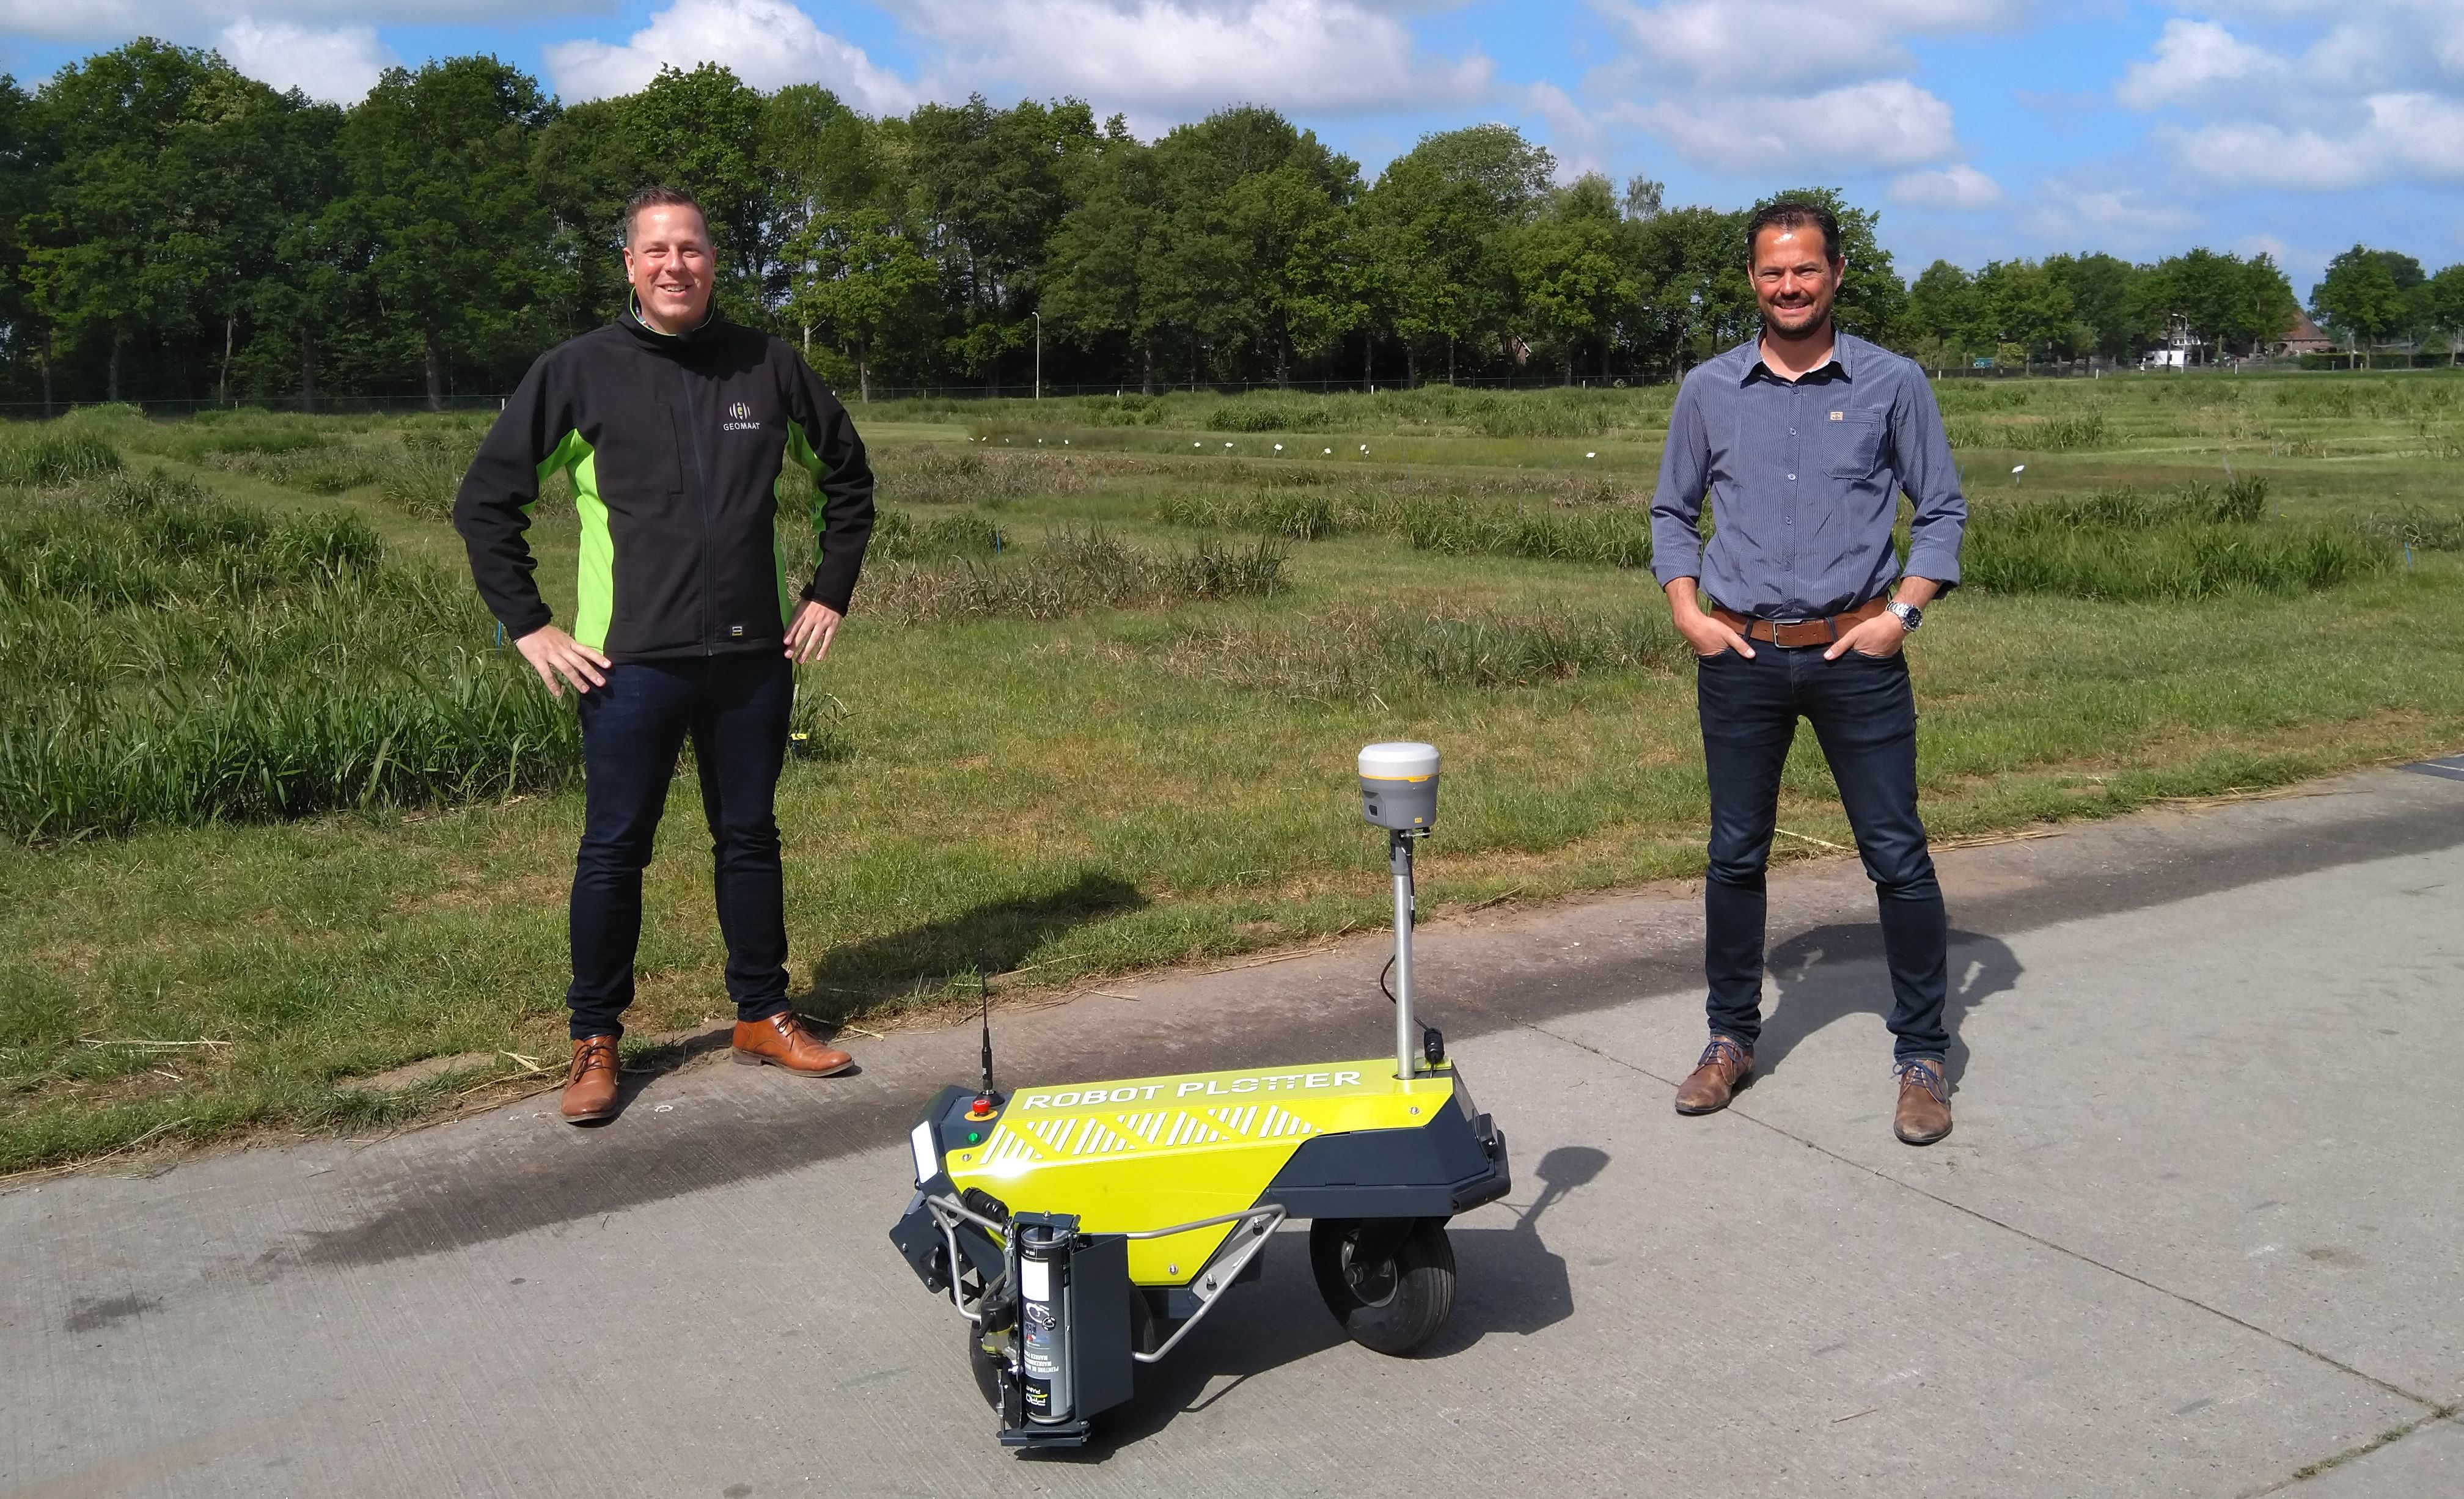 Second Robot Plotter delivered to Geomaat